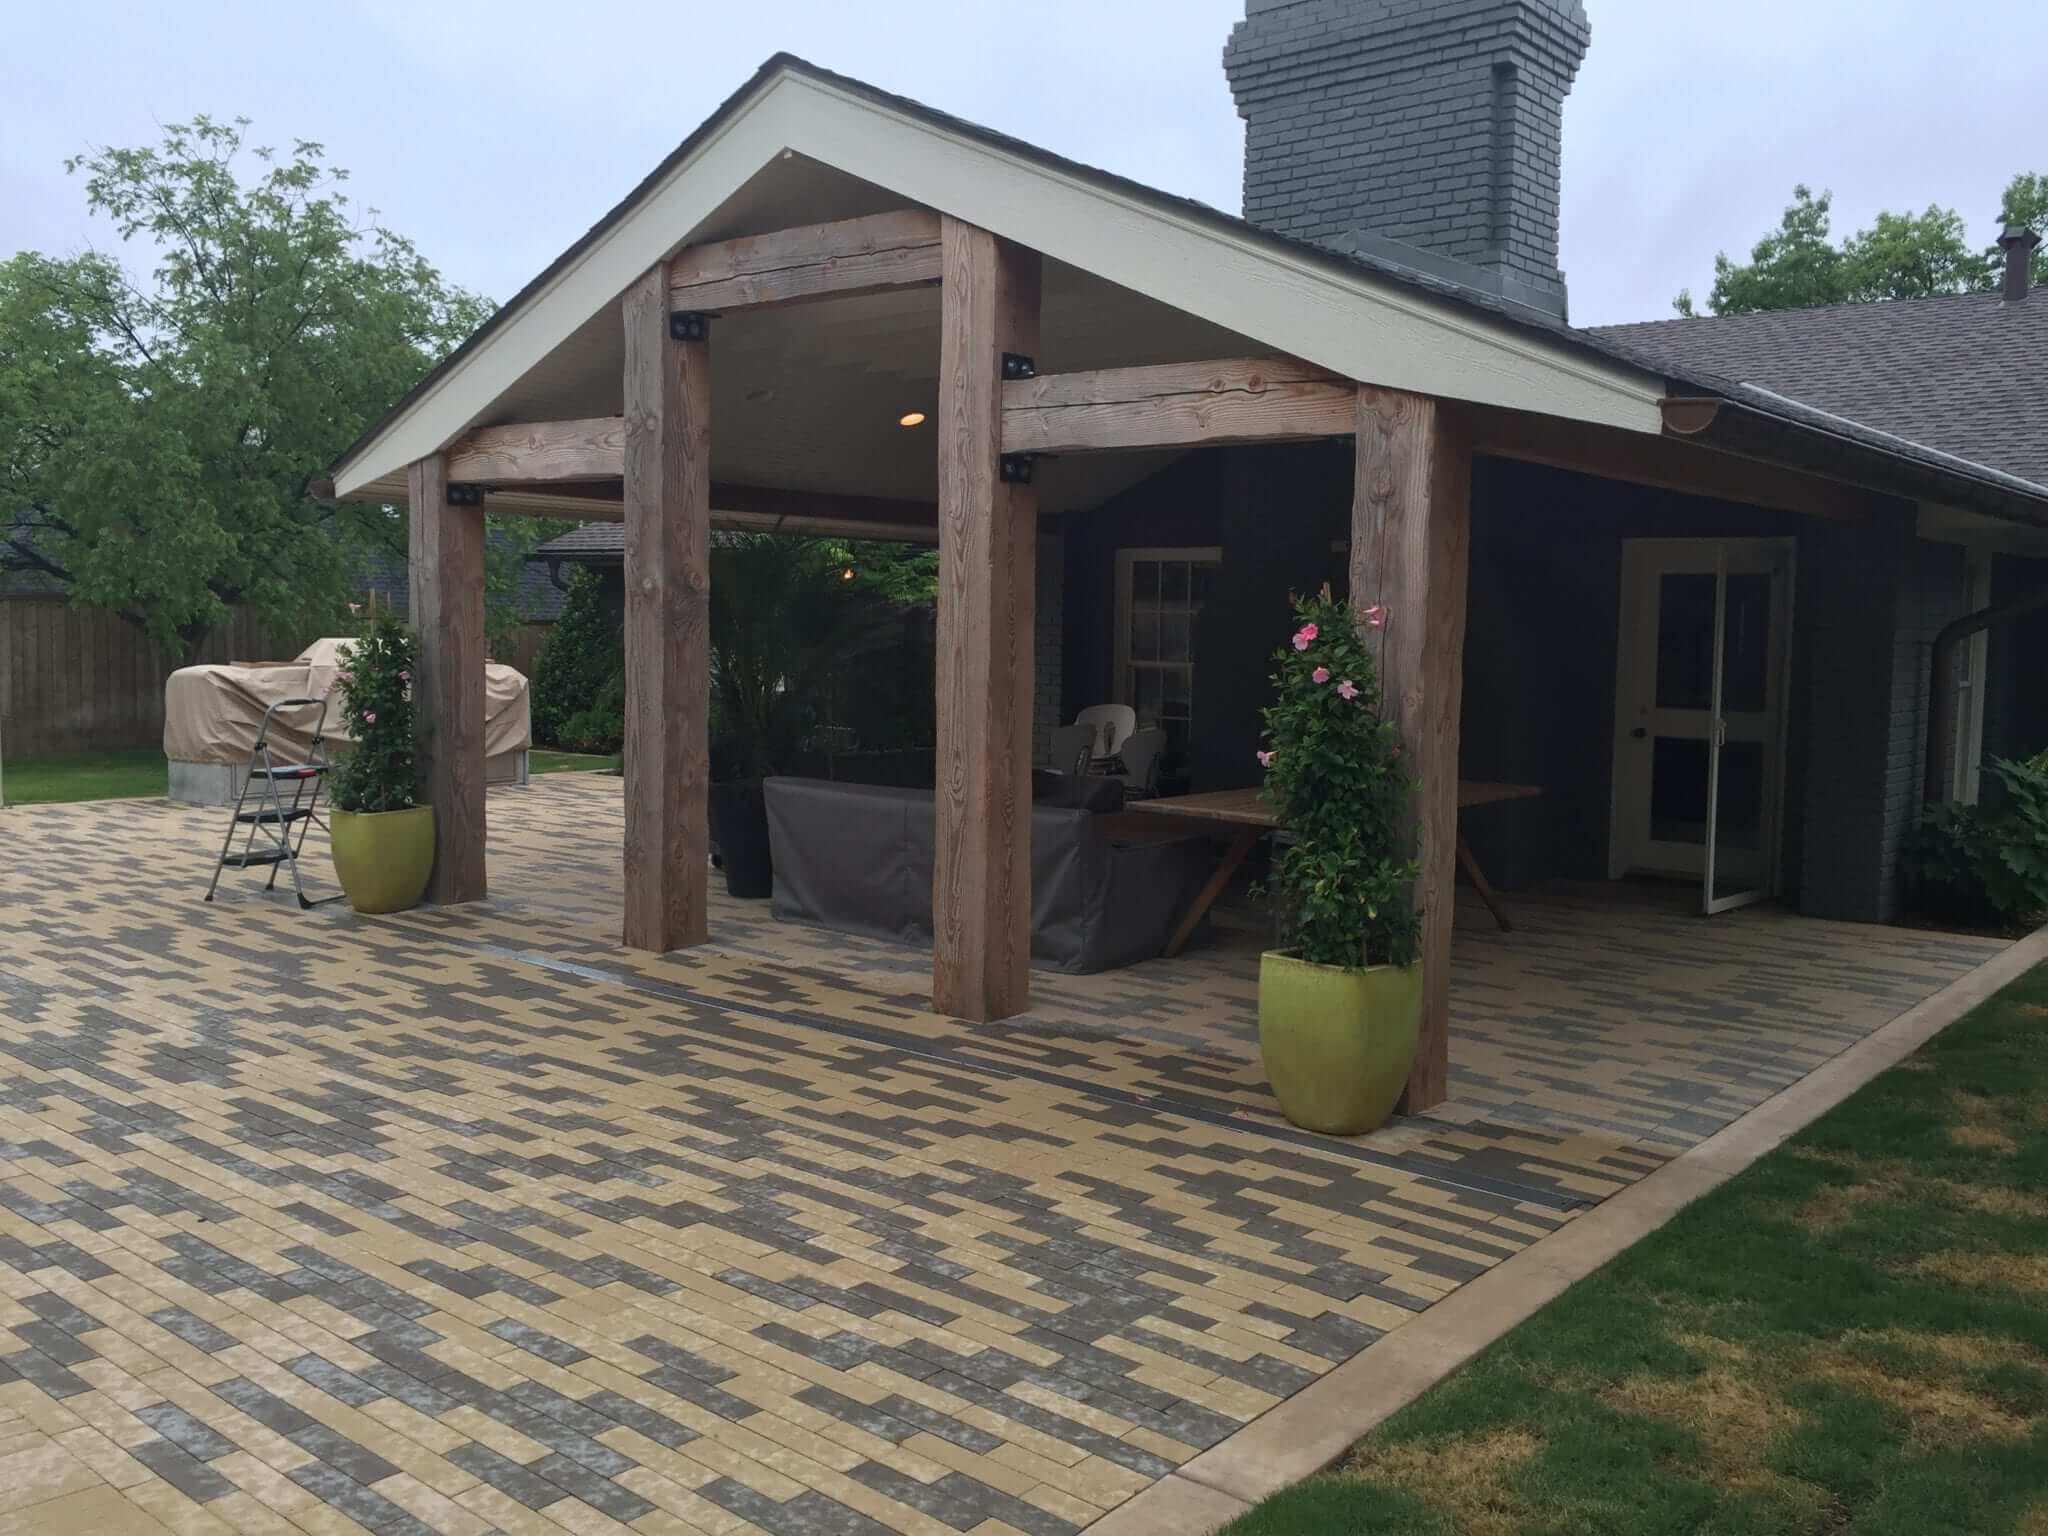 Cedar Posts, extended patio roof, custom pavers, copper gutters, speakers, and paint.